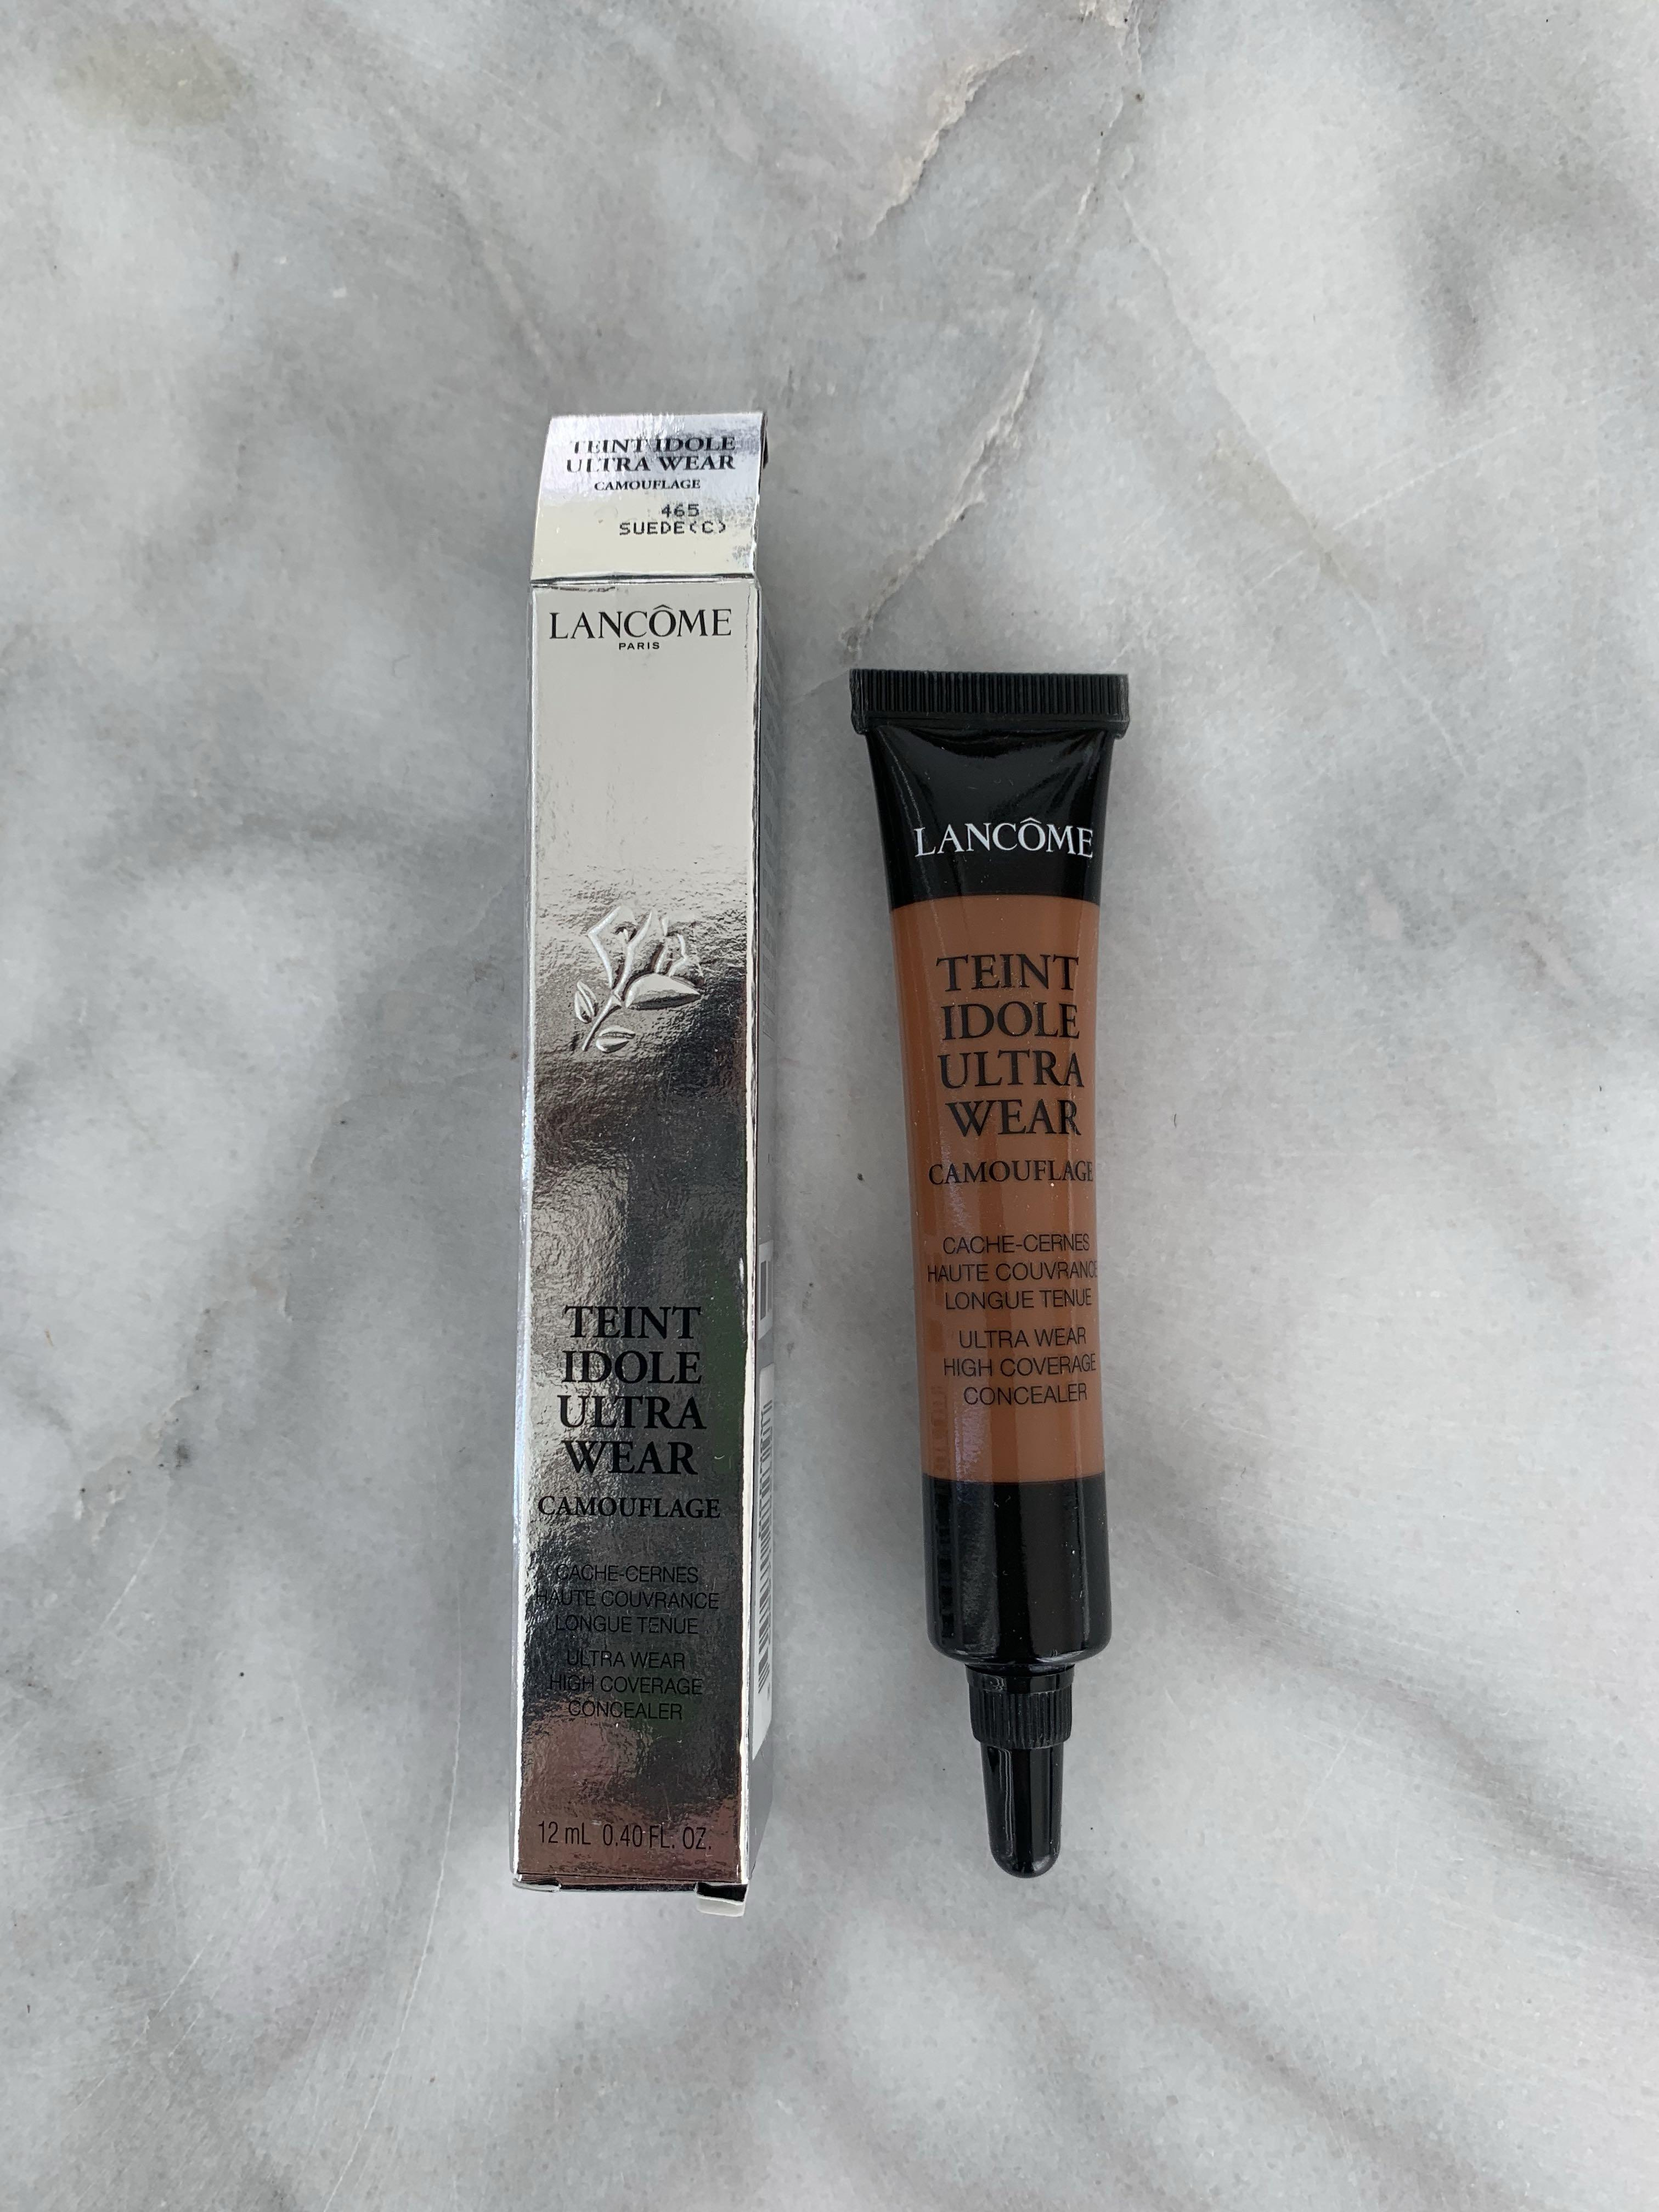 Lancome Teint Idole Ultra Wear Camouflage Concealer in #465